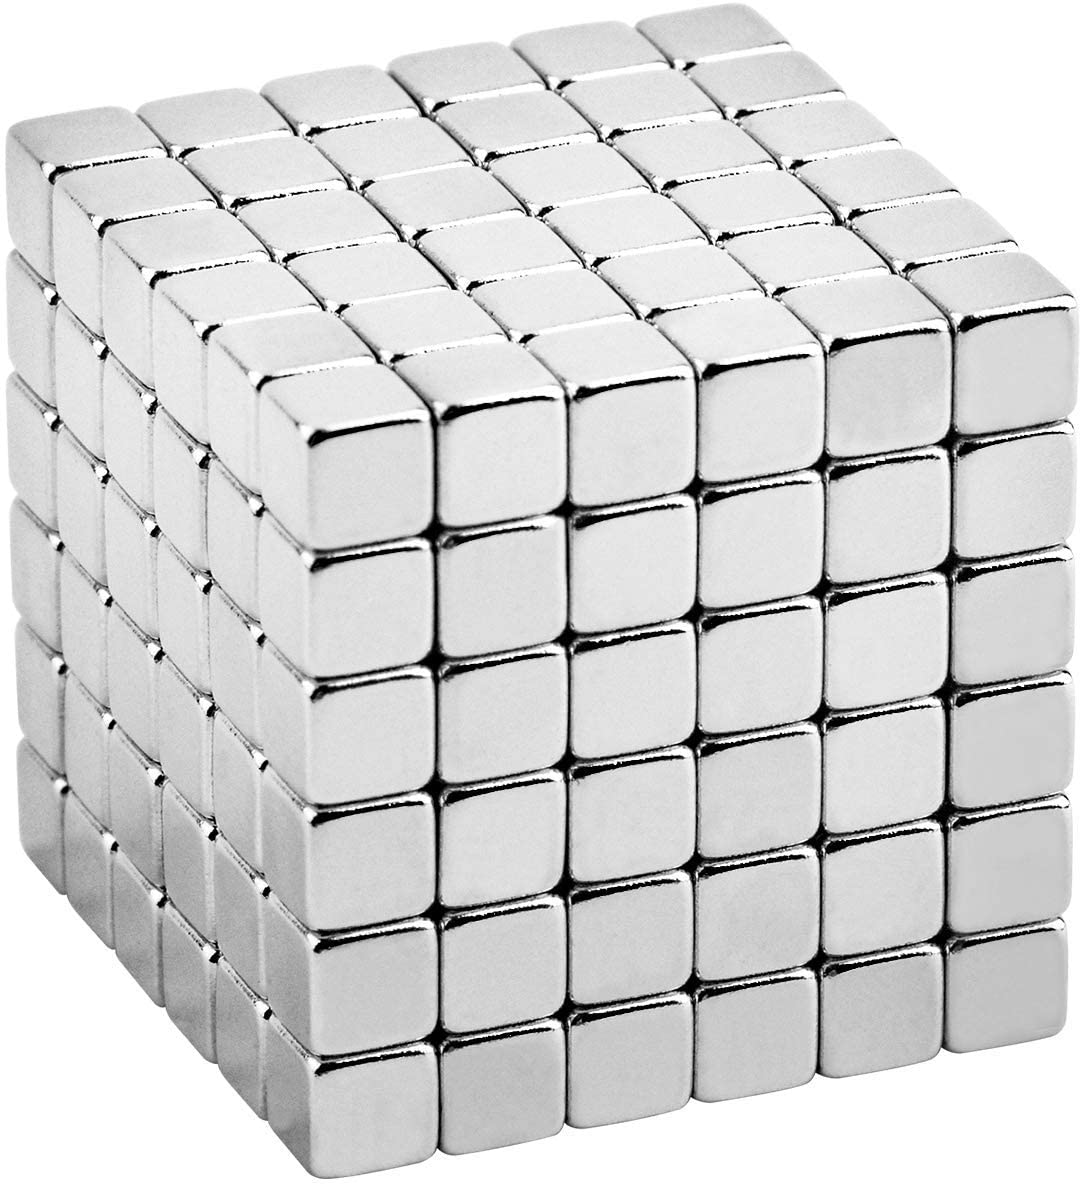 MENGDUO 216 pcs 5mm Magnetic Building Block Toy Set for Intellectual Development, and Decompression Toys for Adults. (Cube-Silver)